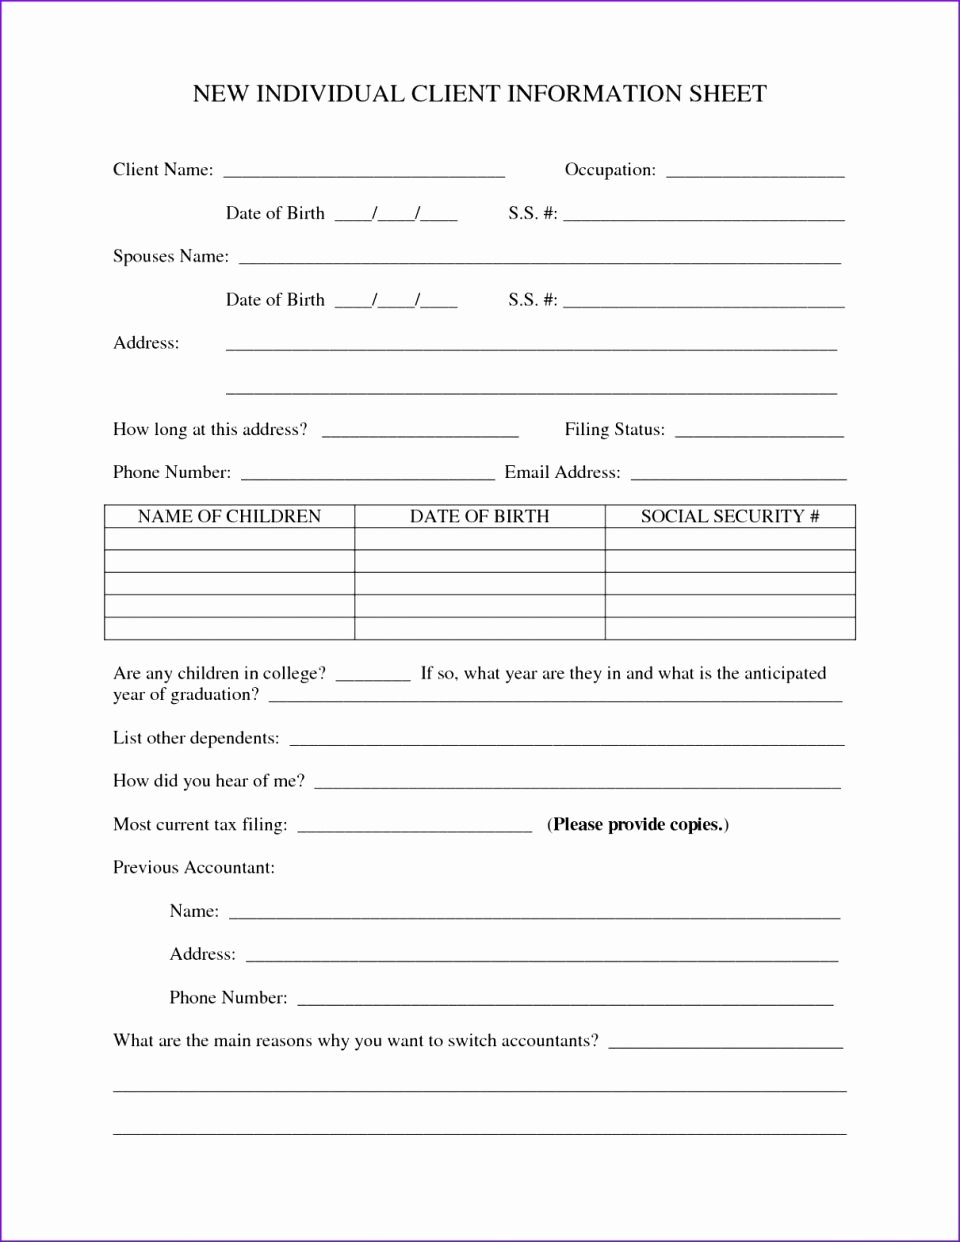 Client Contact form Elegant Client Information Sheet Template Graphy Contact